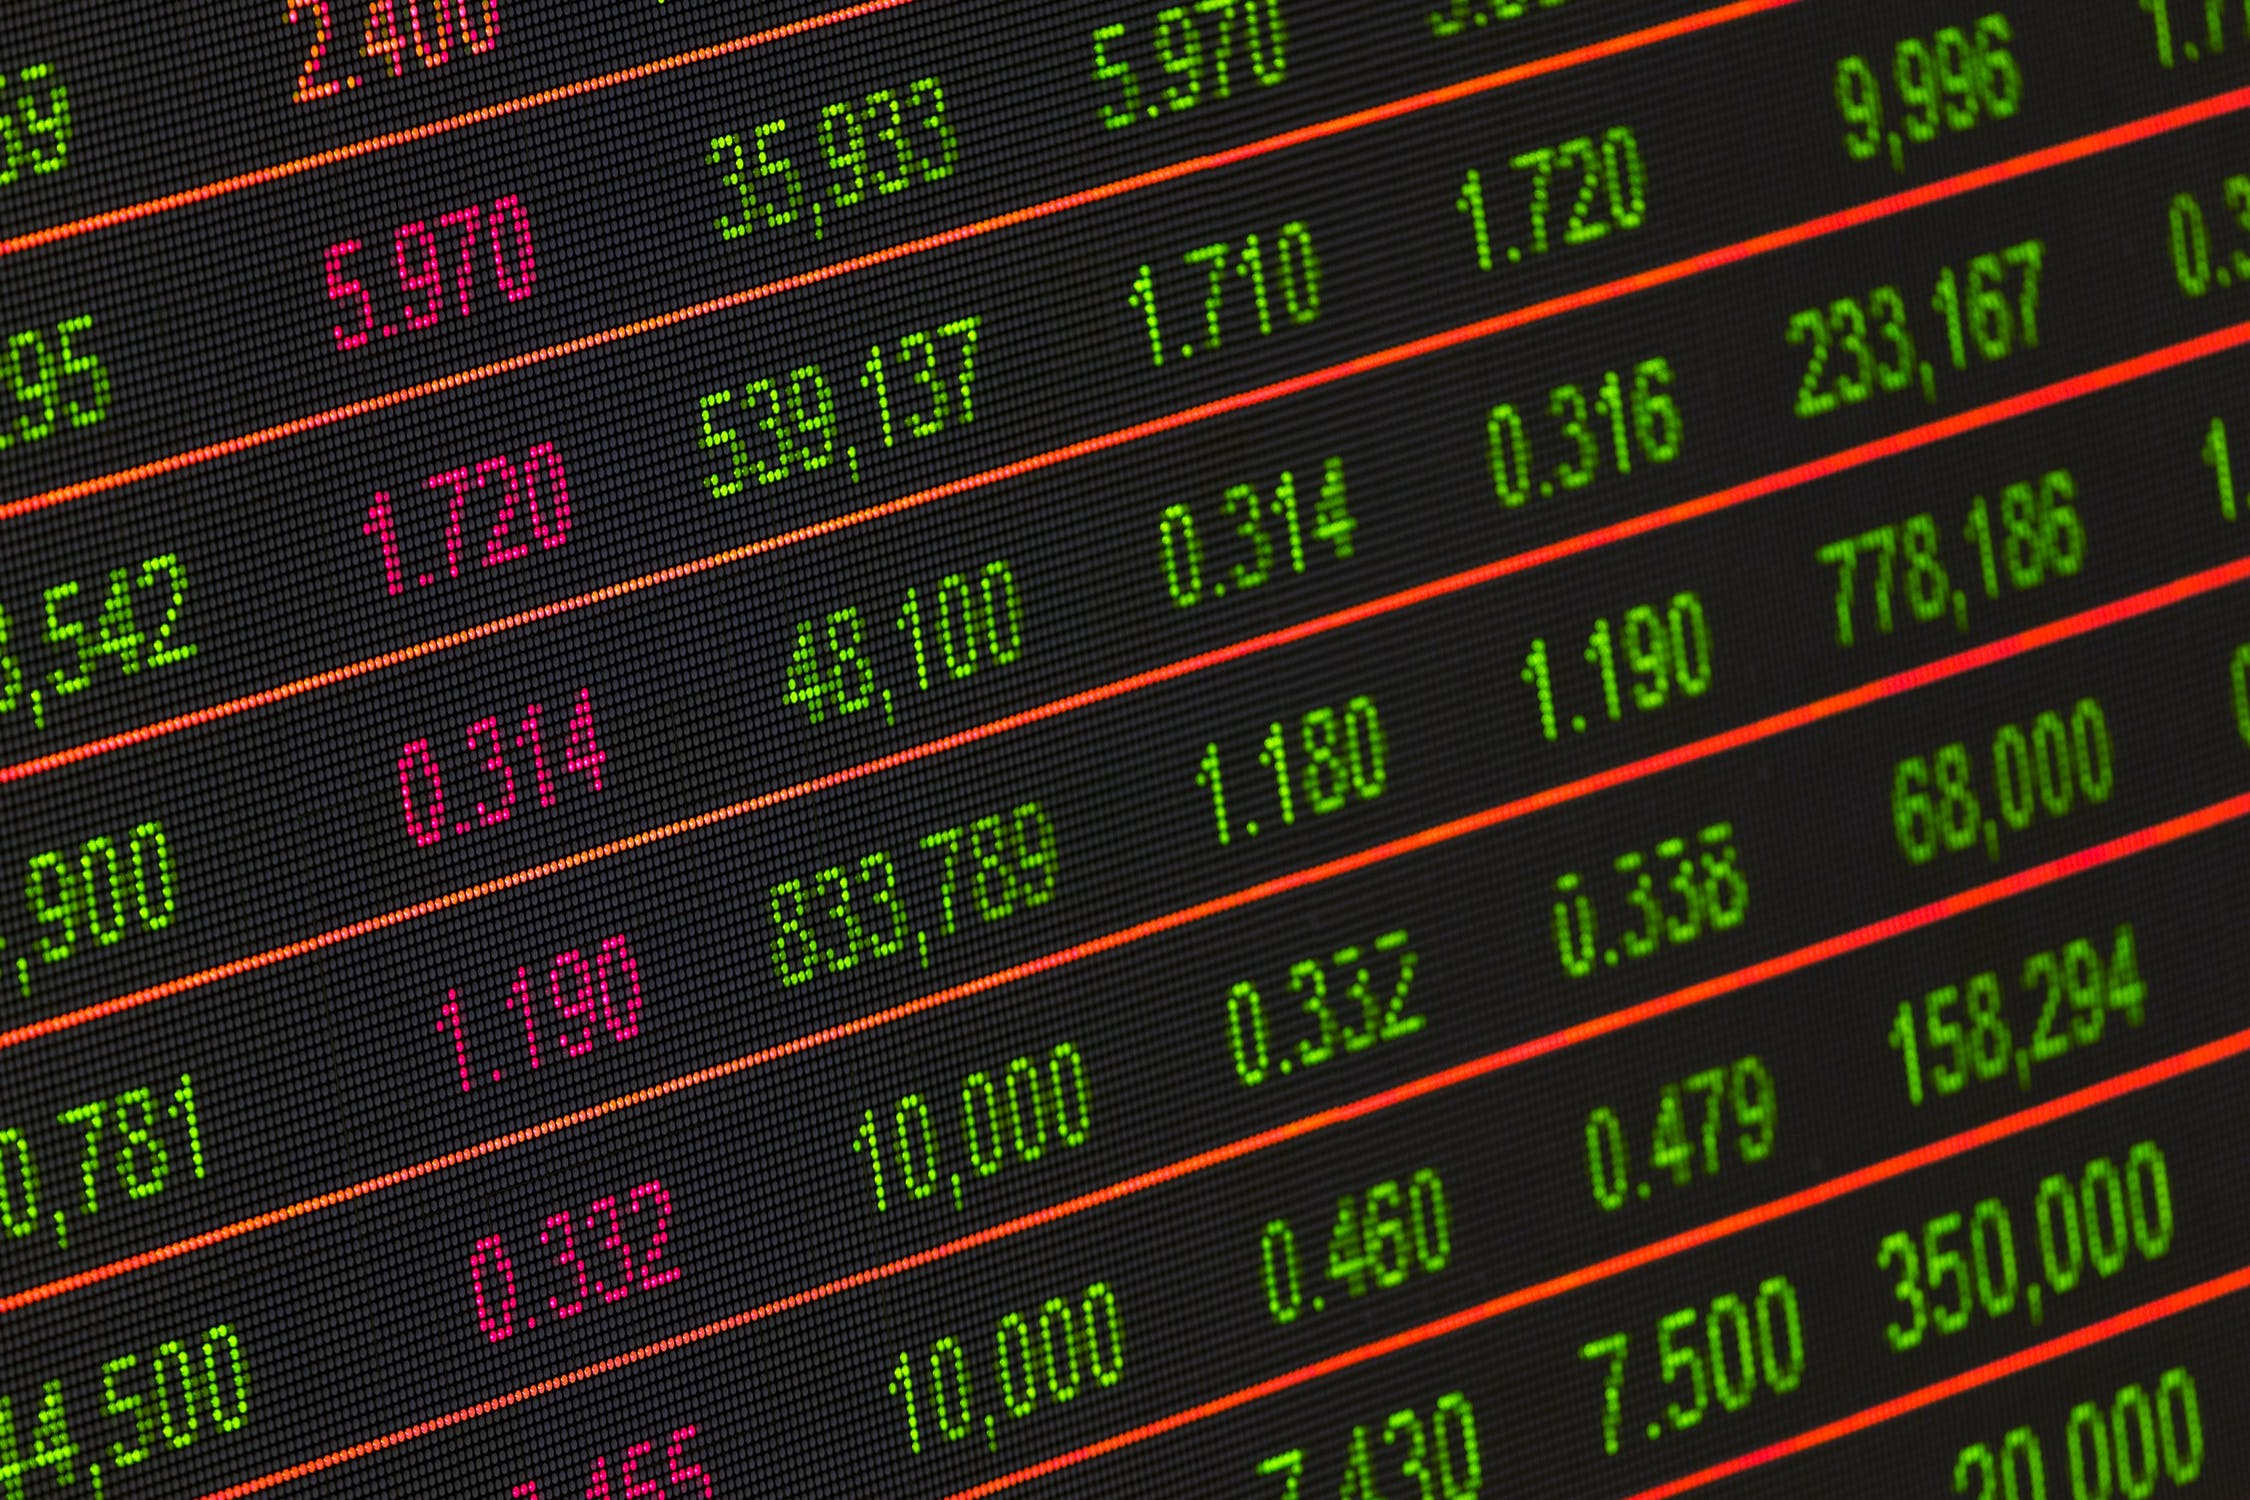 Close up of a stock market screen